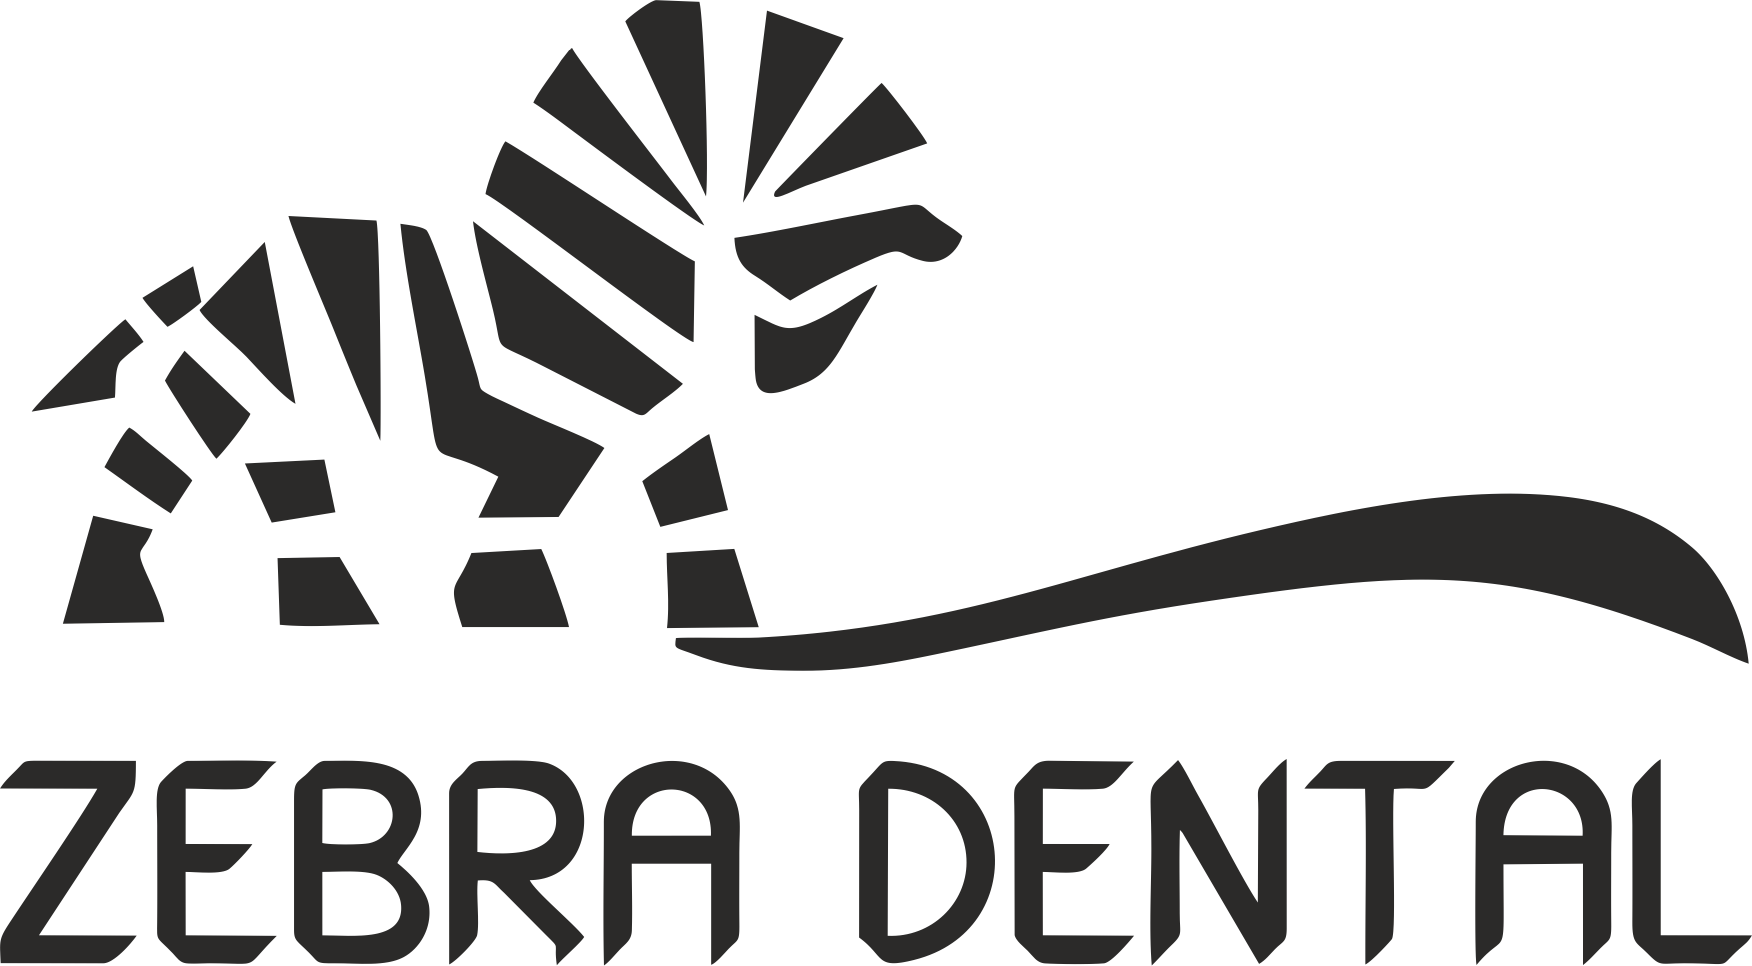 Zebra Dental